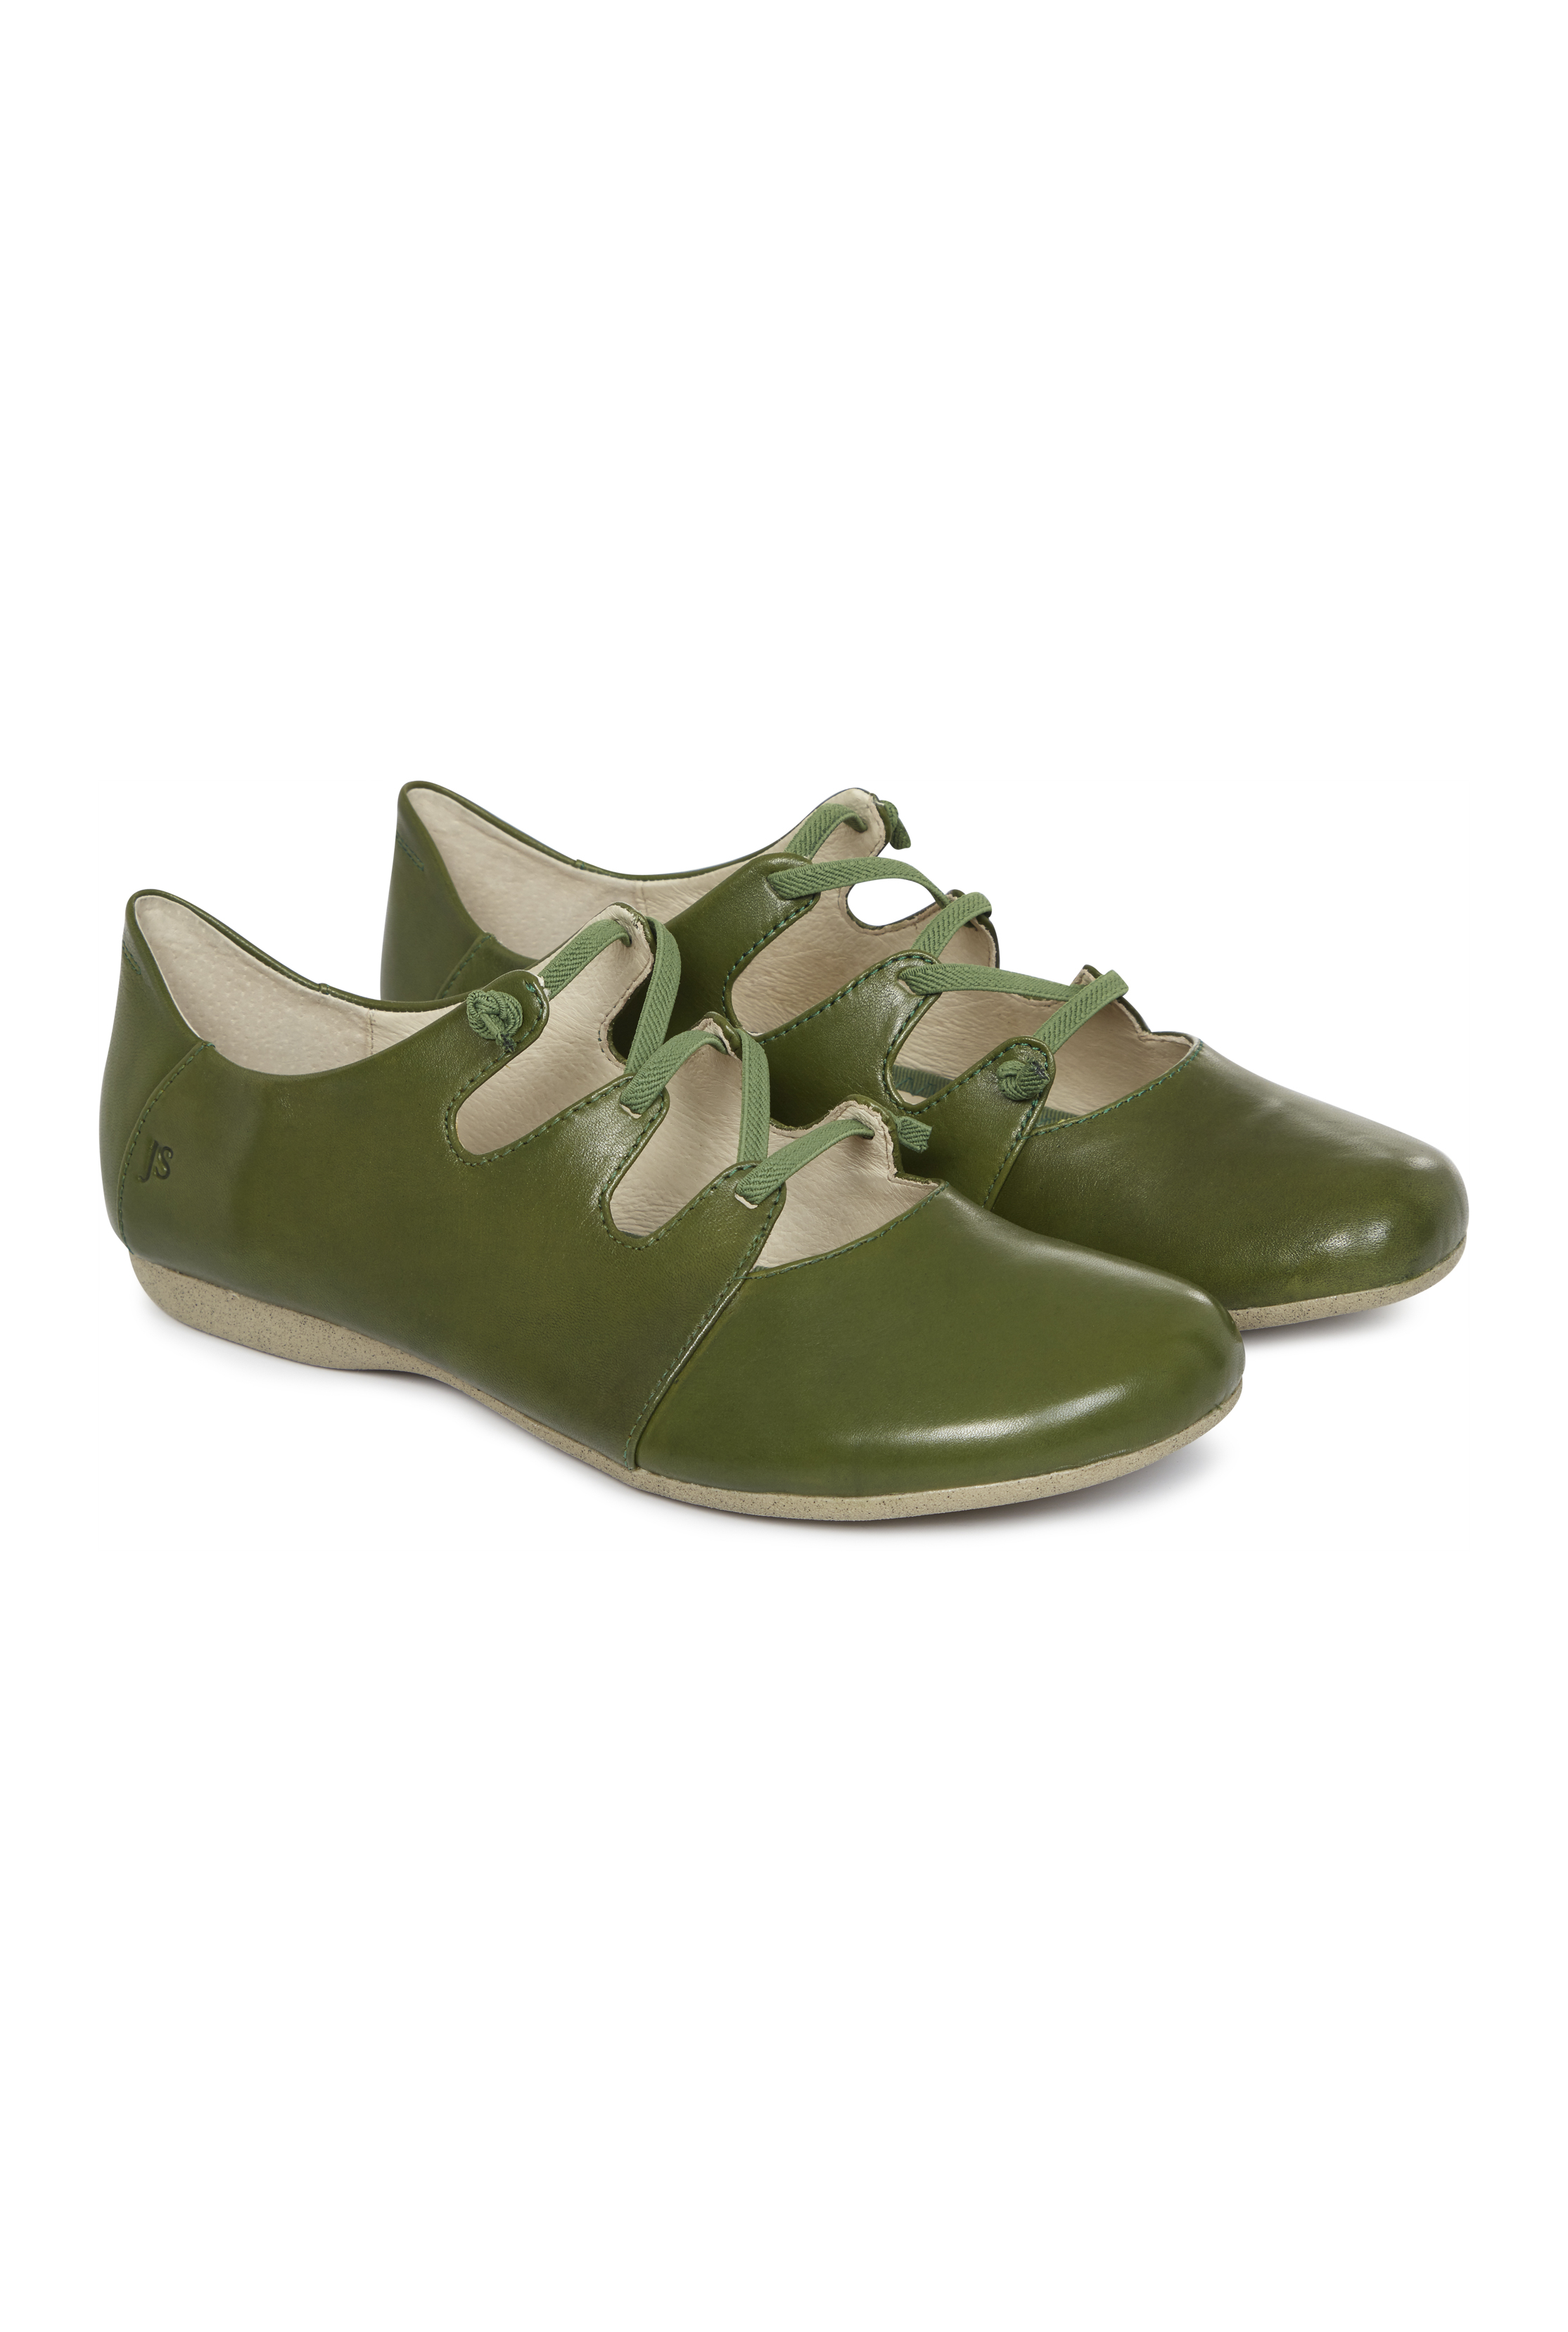 Josef Seibel Fiona 04 Leather Shoe